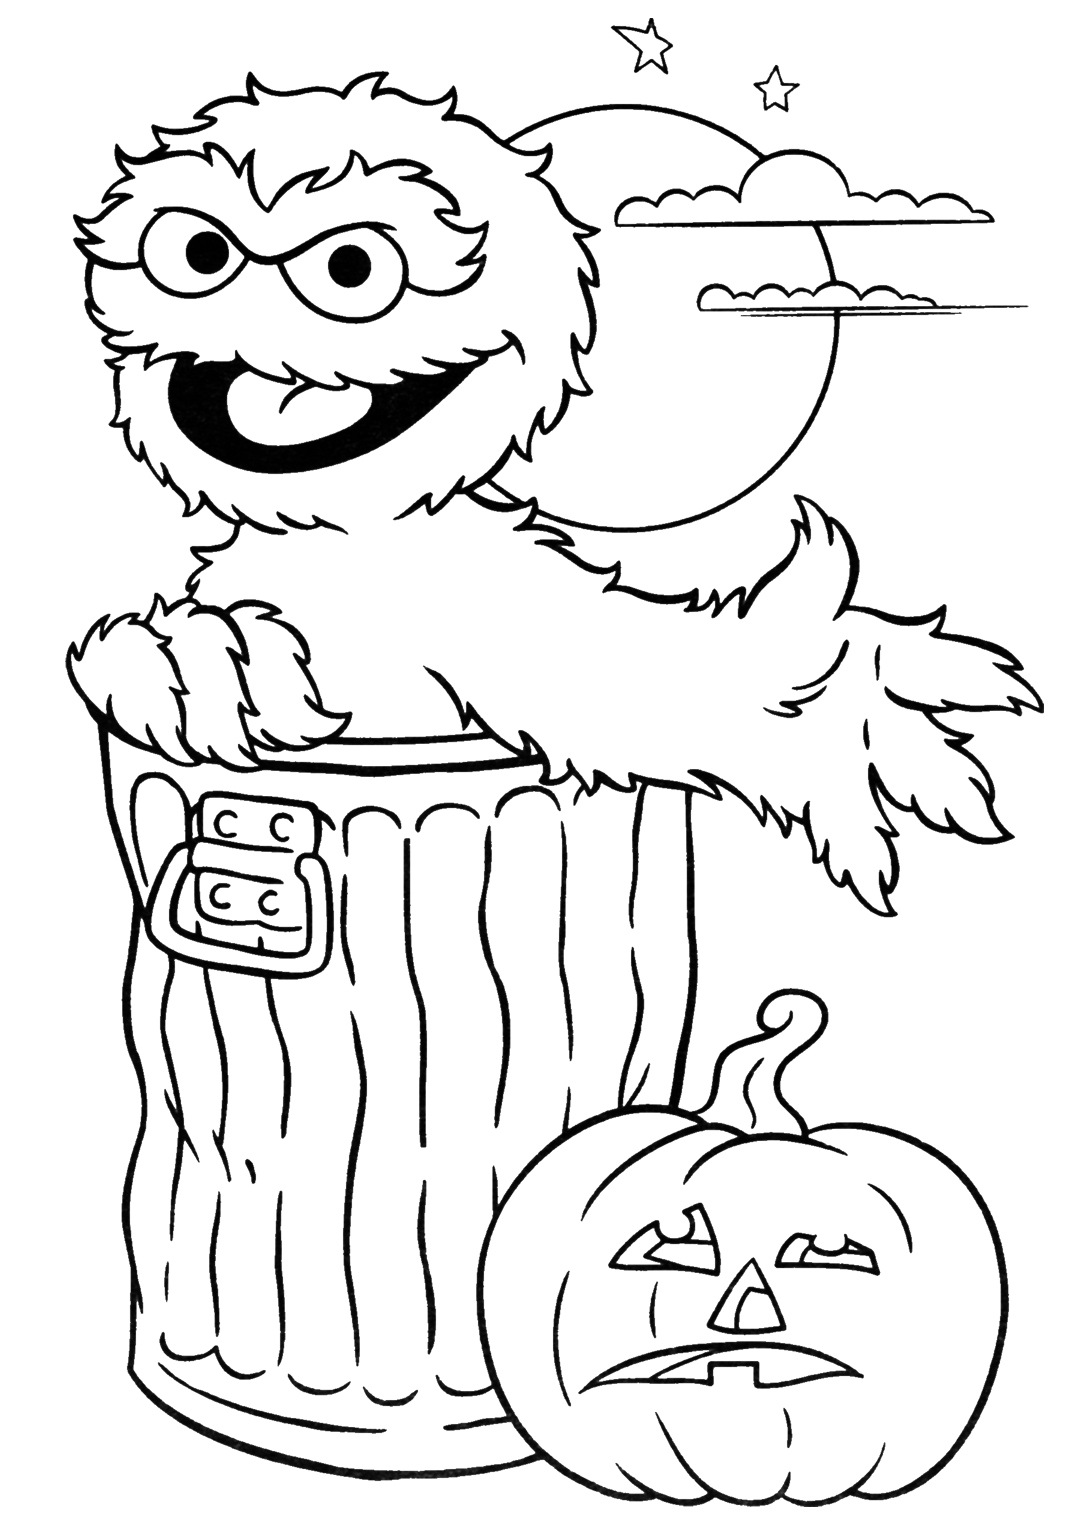 haloween coloring pages halloween to download halloween kids coloring pages haloween coloring pages